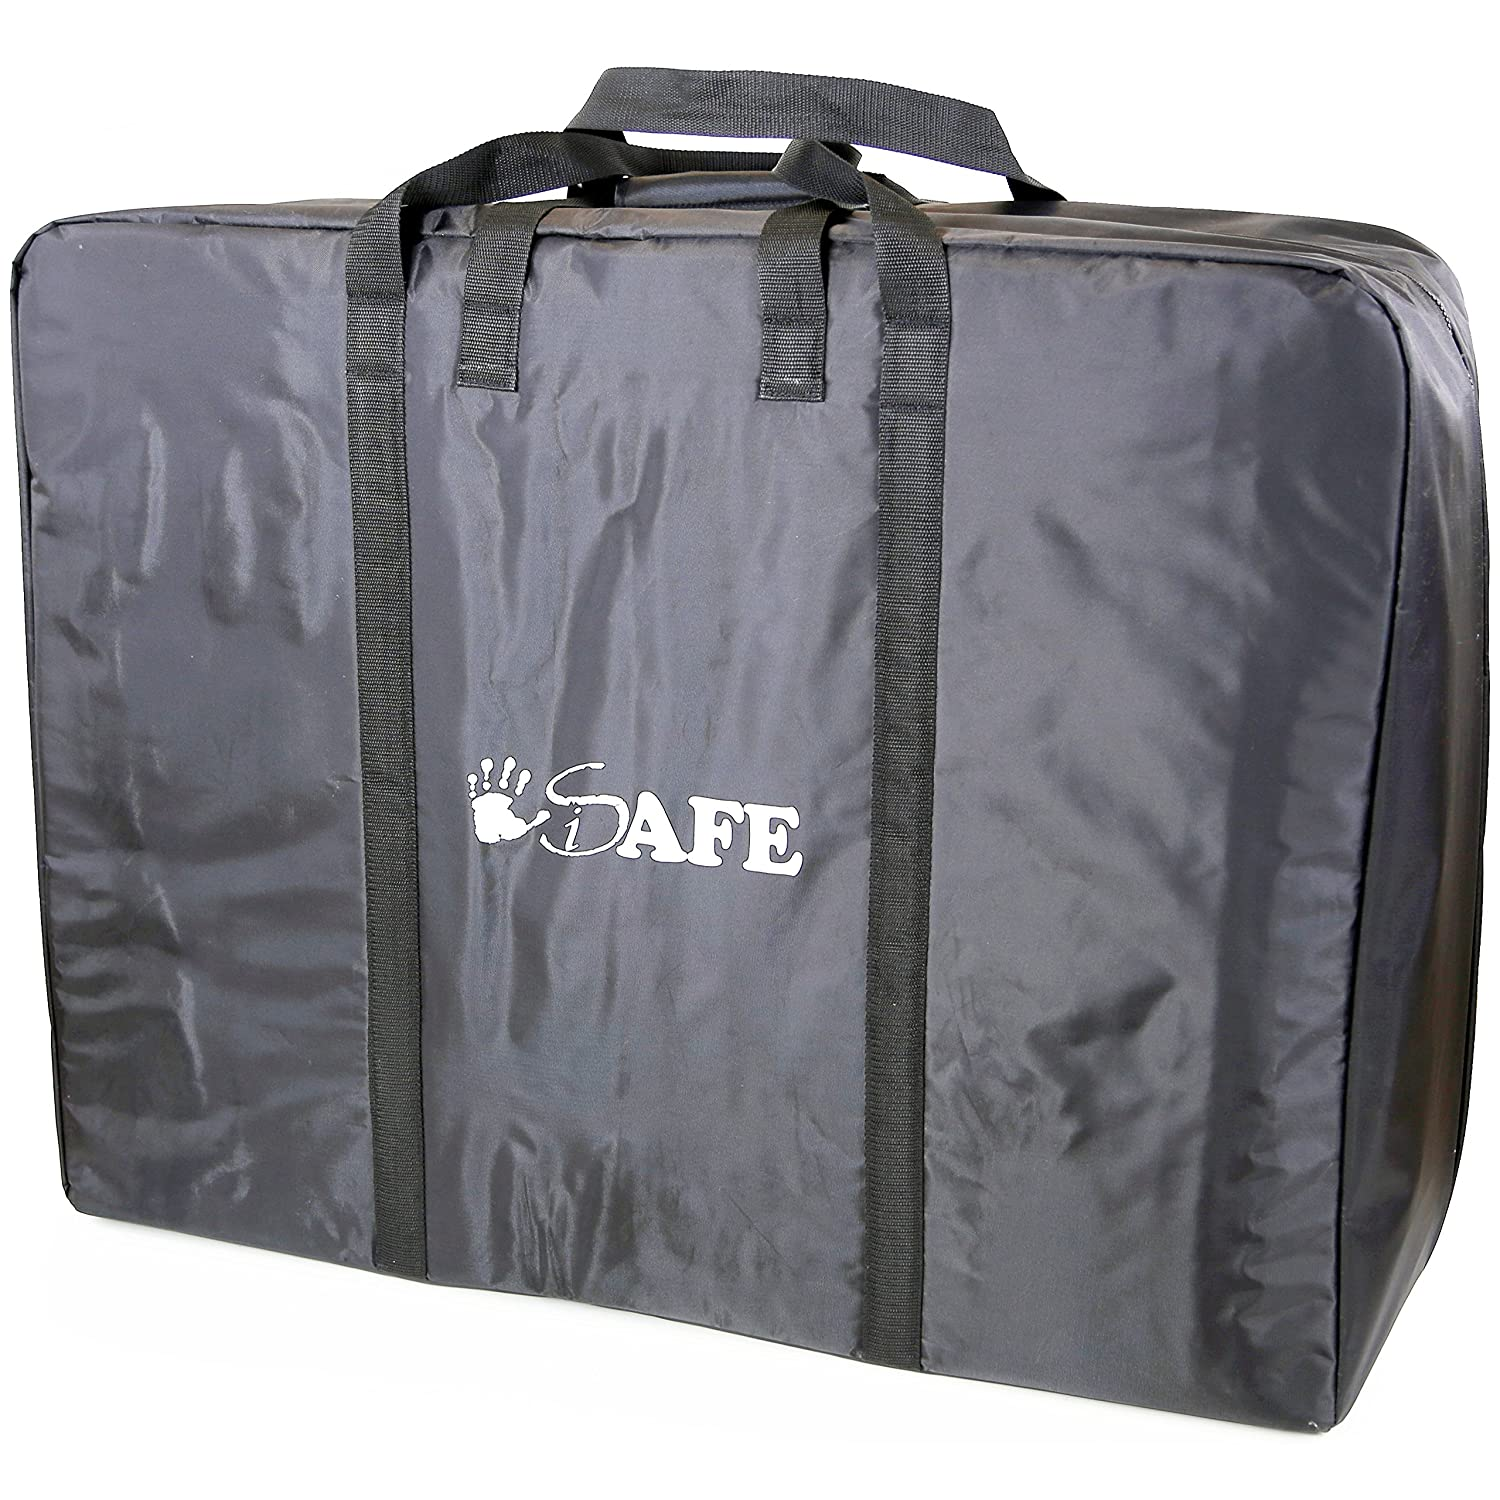 iSafe Large Holiday TWIN / INLINE / DOUBLE Travel Bag Luggage Heavy Duty Design For iSafe Me& You Travel Tote iSafeTrvlBagPram